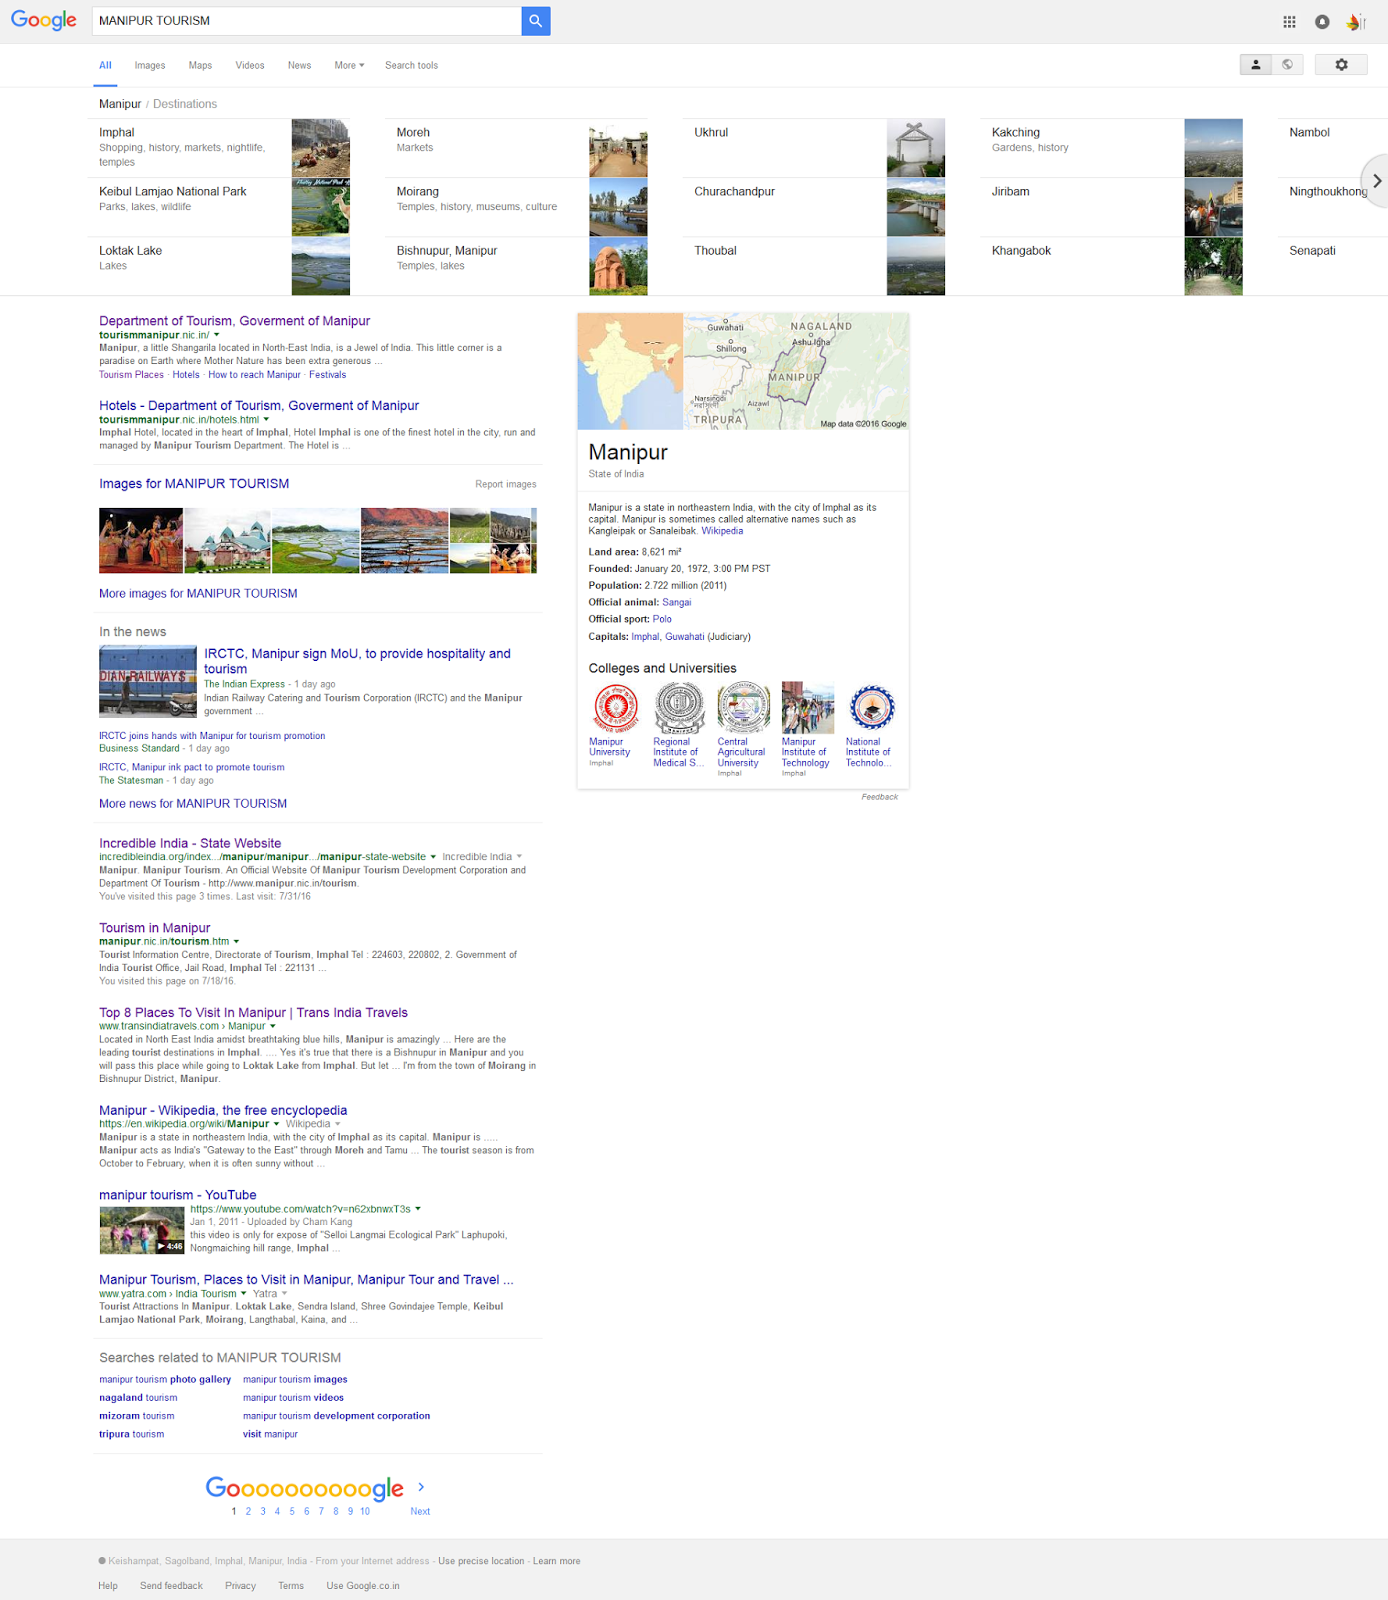 how to my website on google search